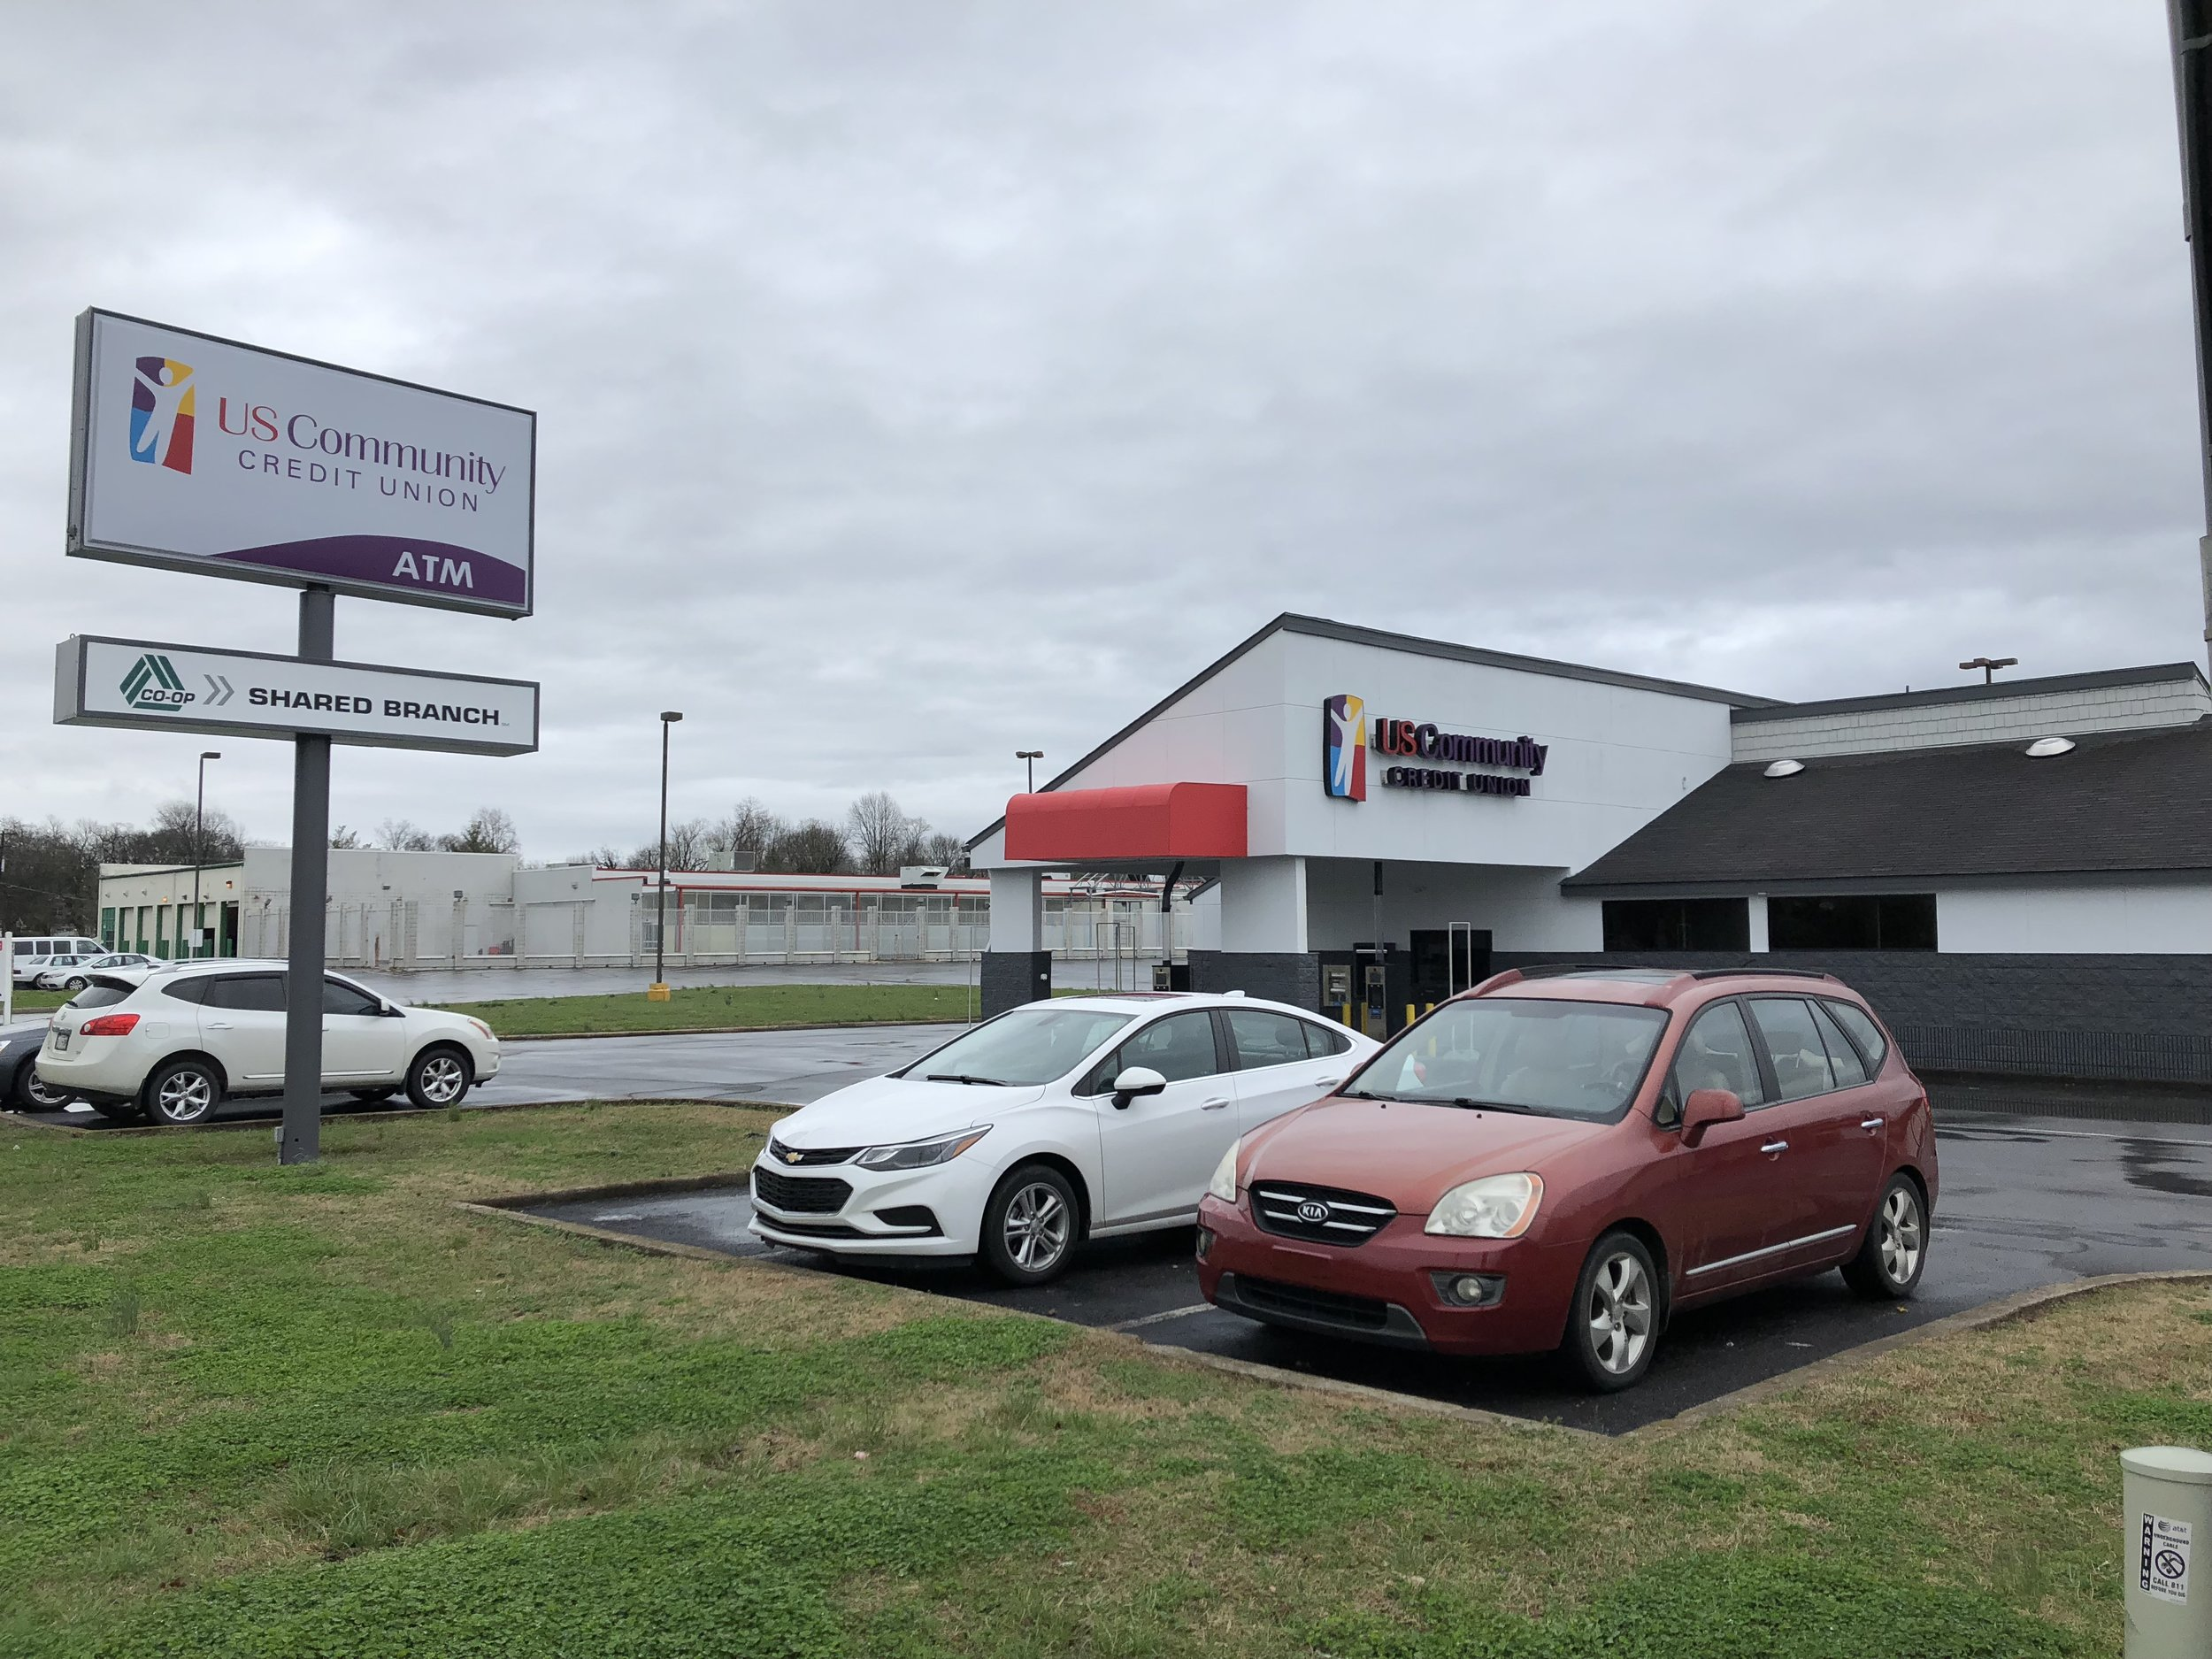 Cars parked at the brand new Murfreesboro branch